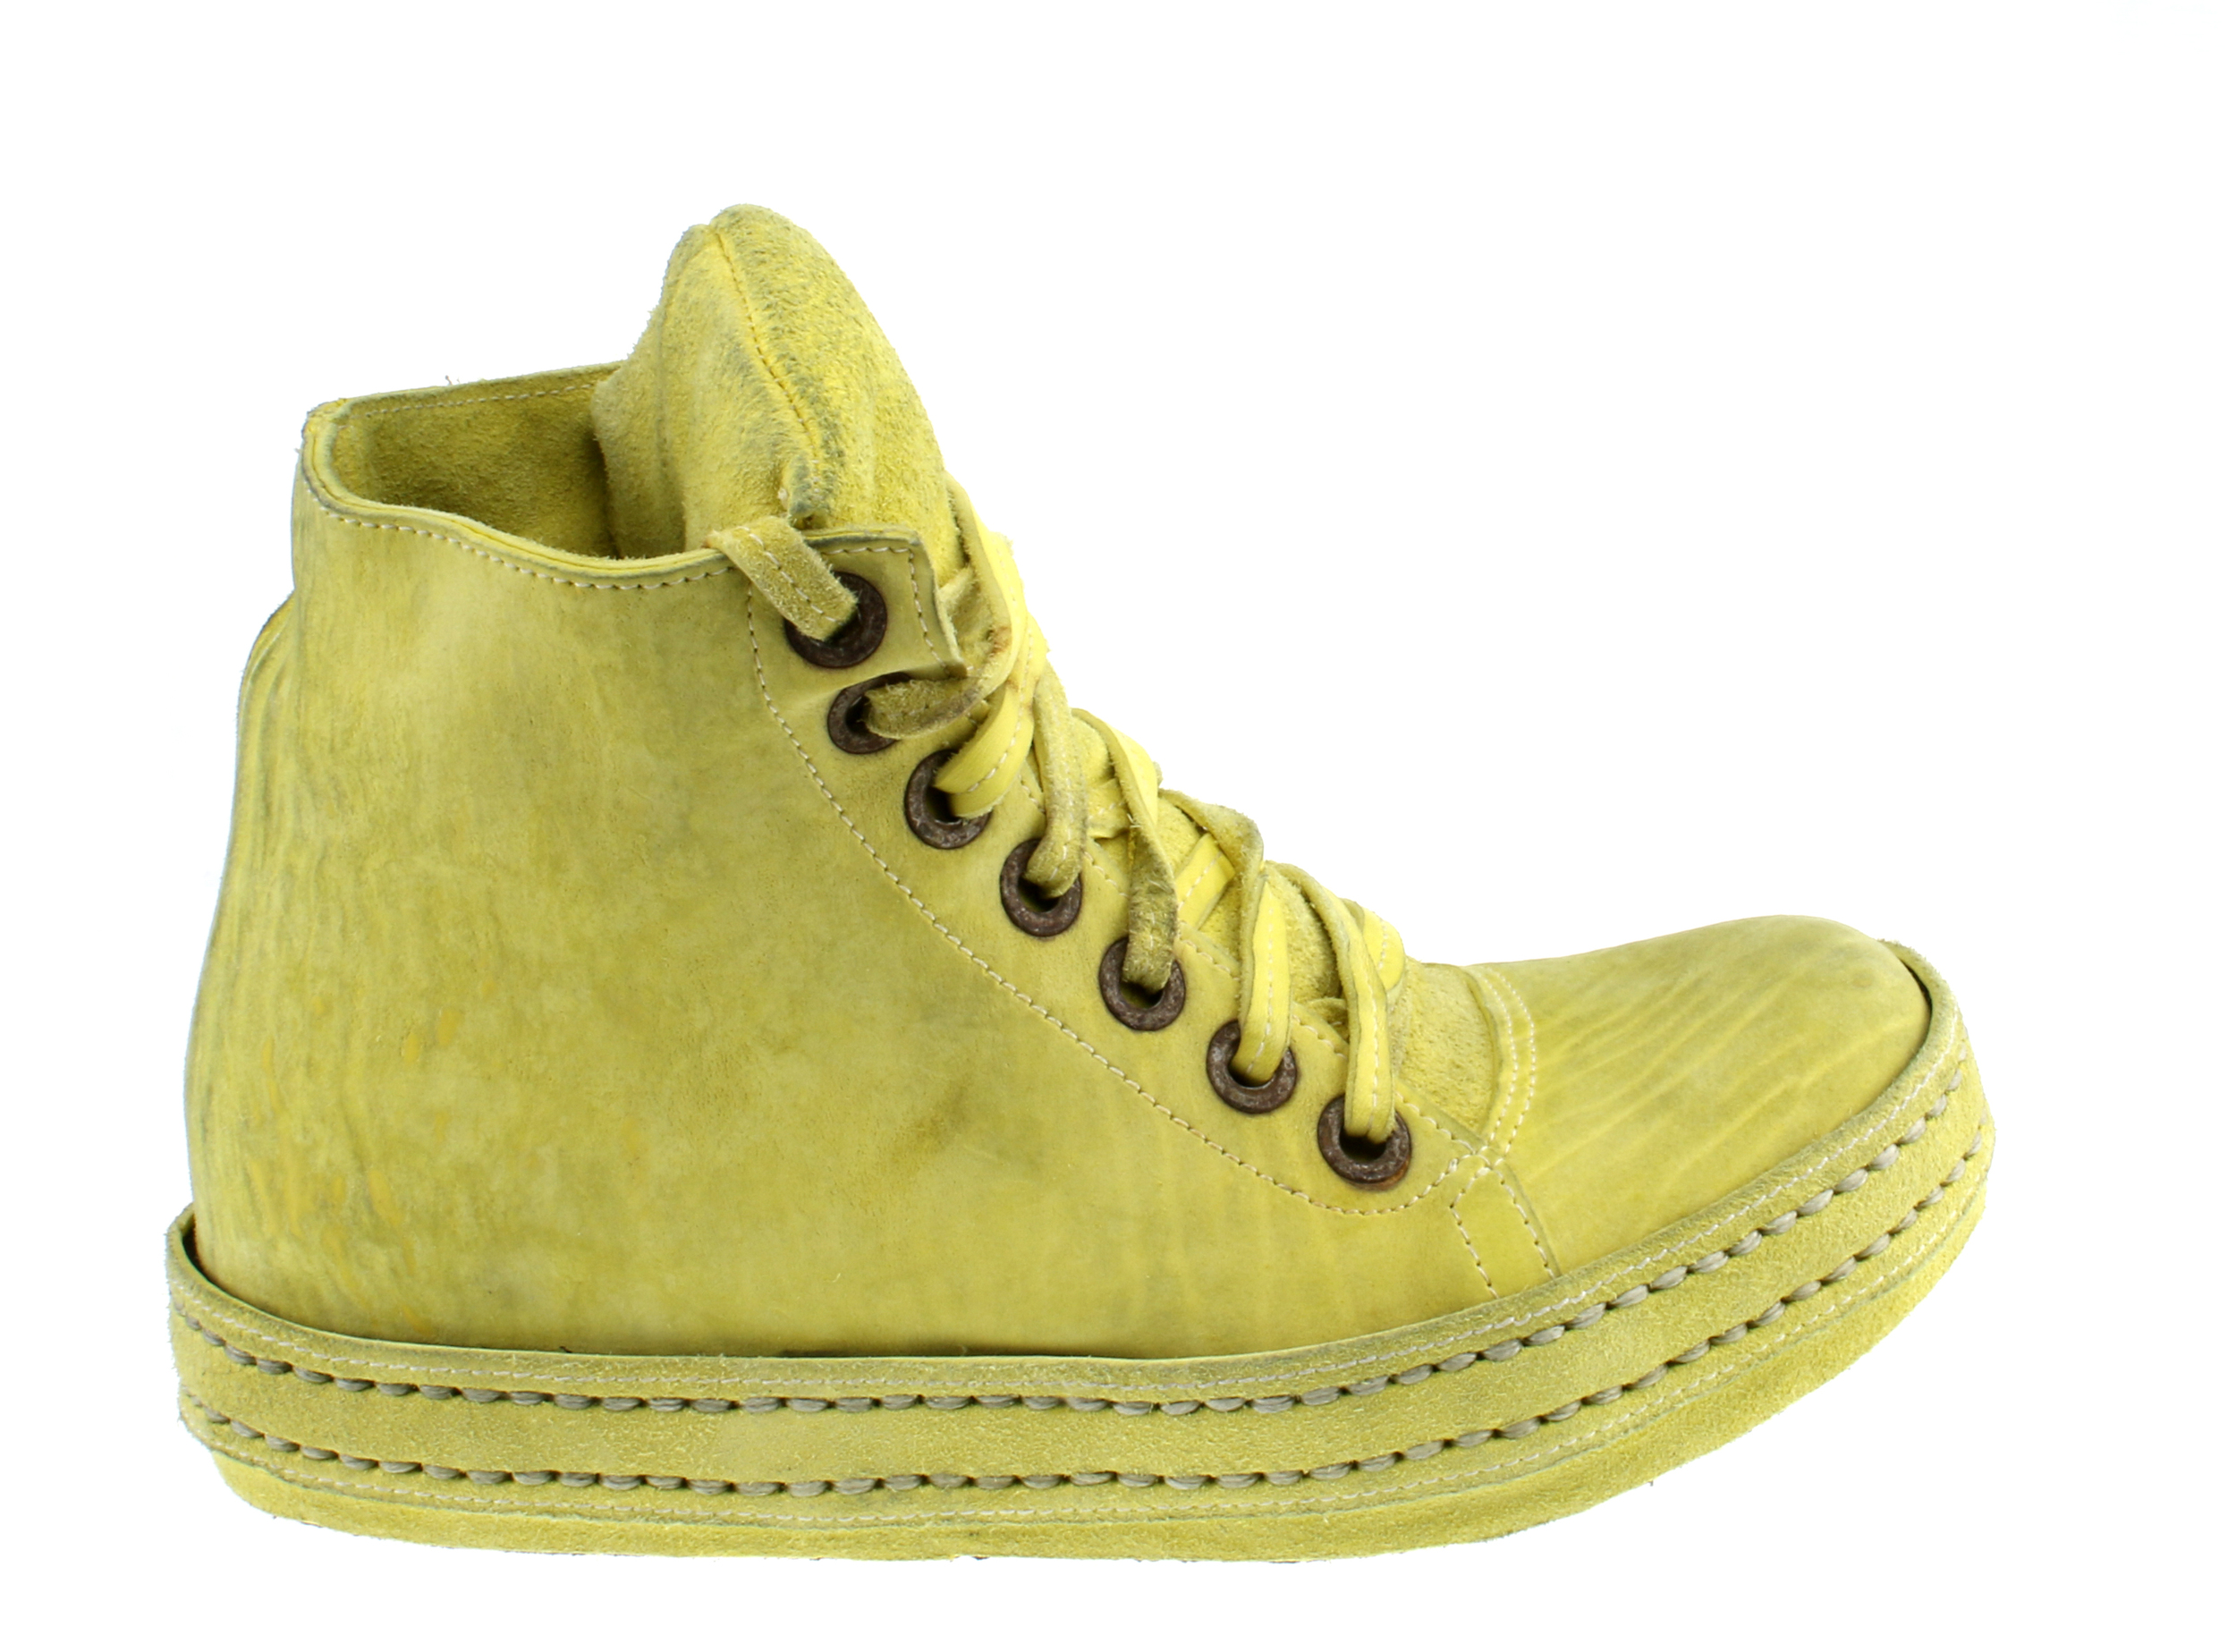 7 Hole Treated Yellow Suede Outside.jpg